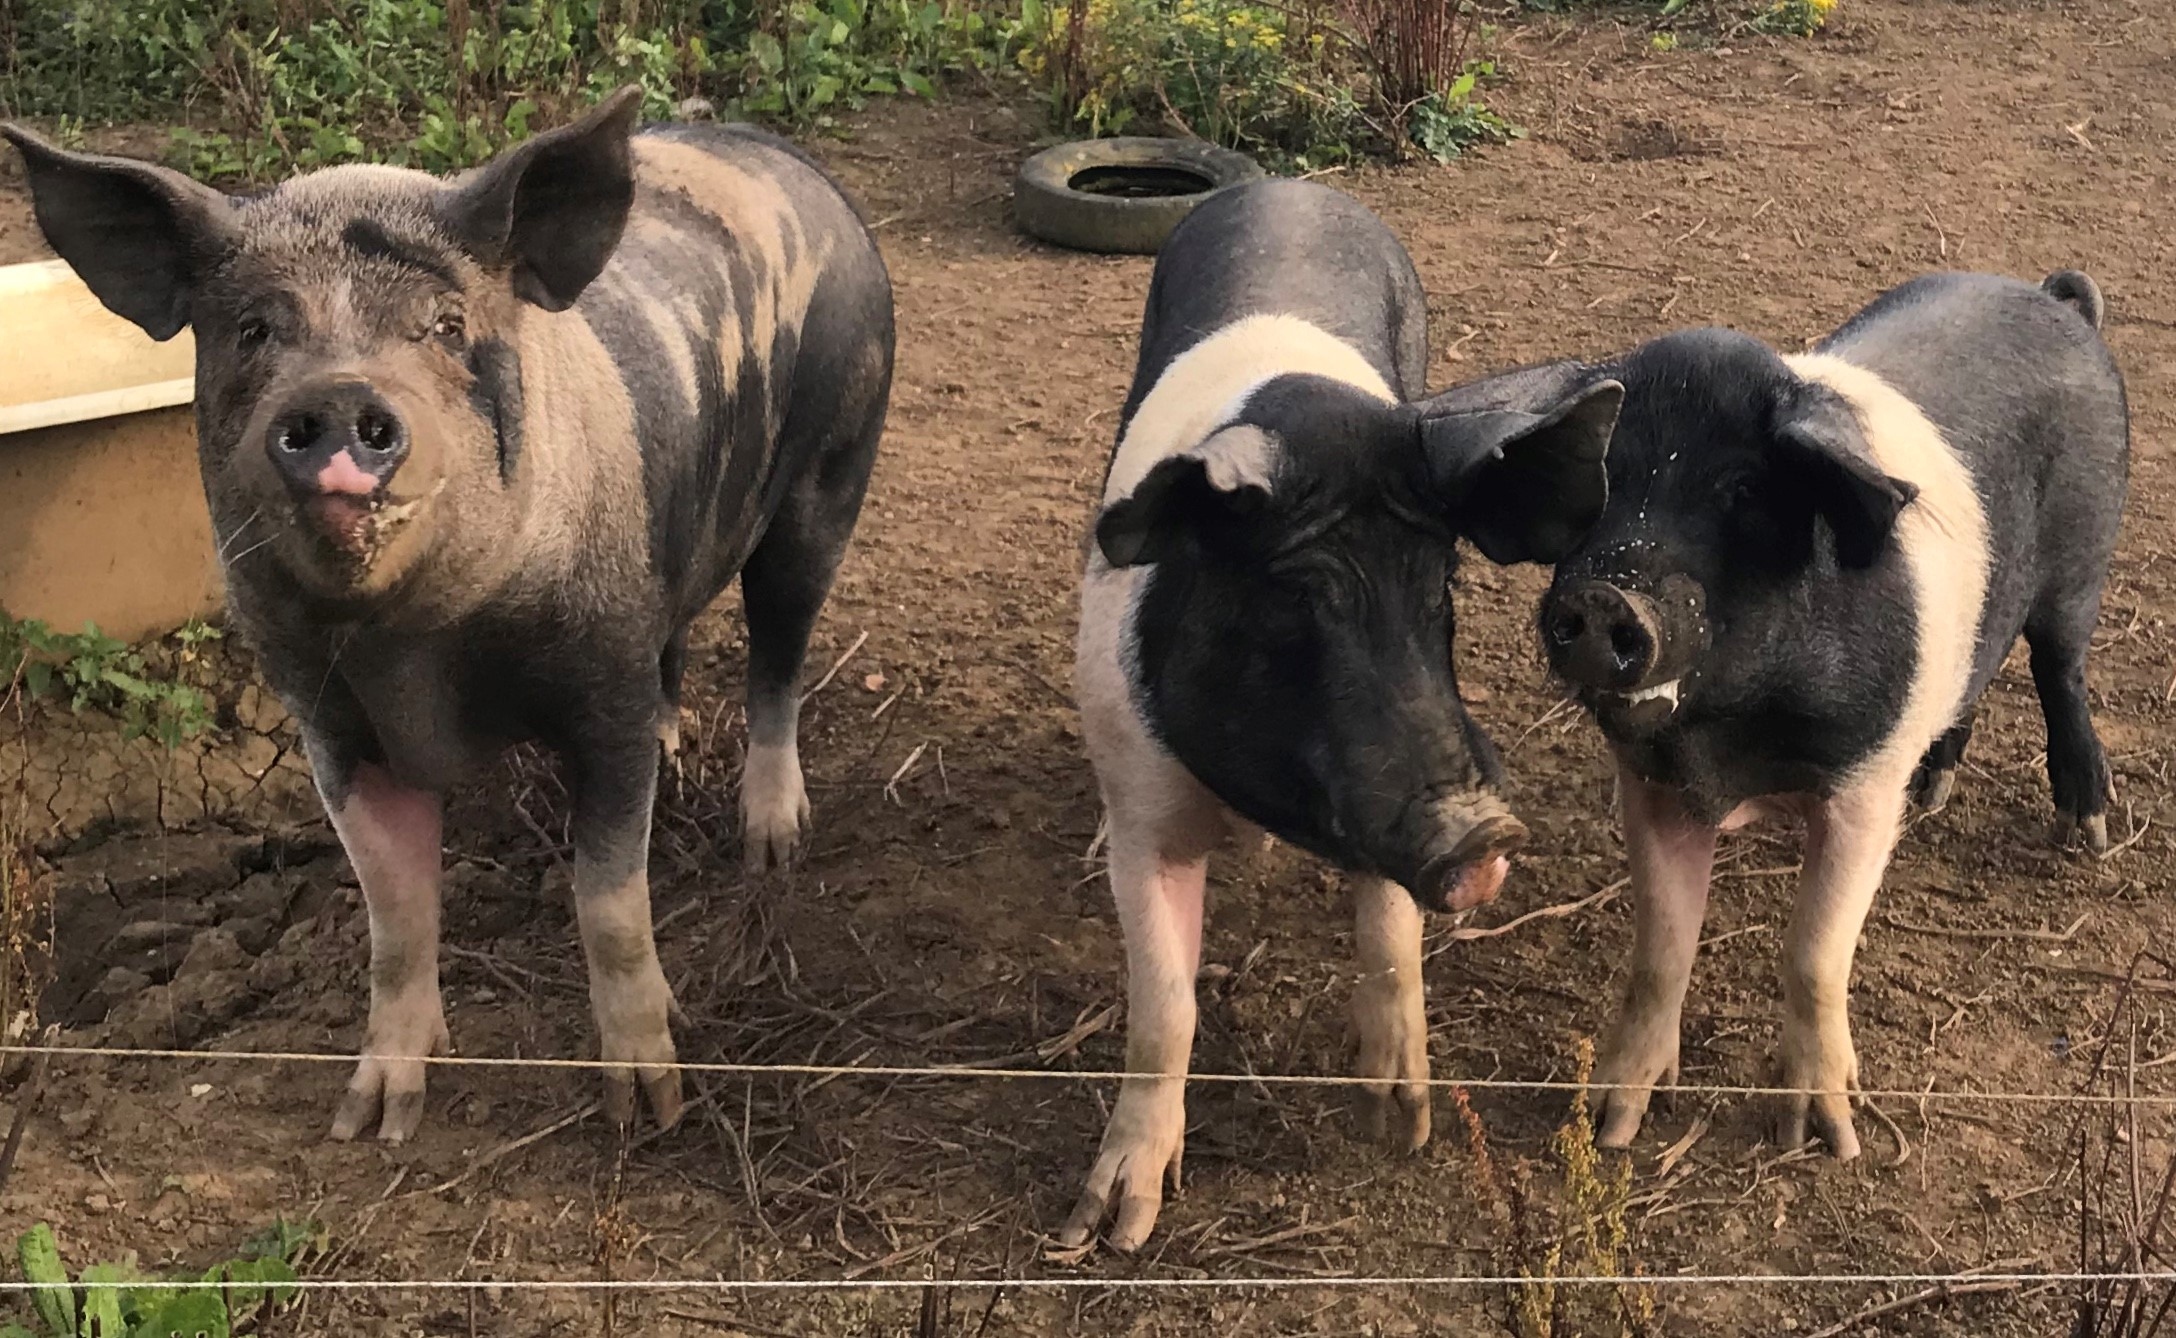 Above: Bangers, Sausage and Mash, Alan Williams' pet pigs who have had more attention with Tom and Sophie being there too.